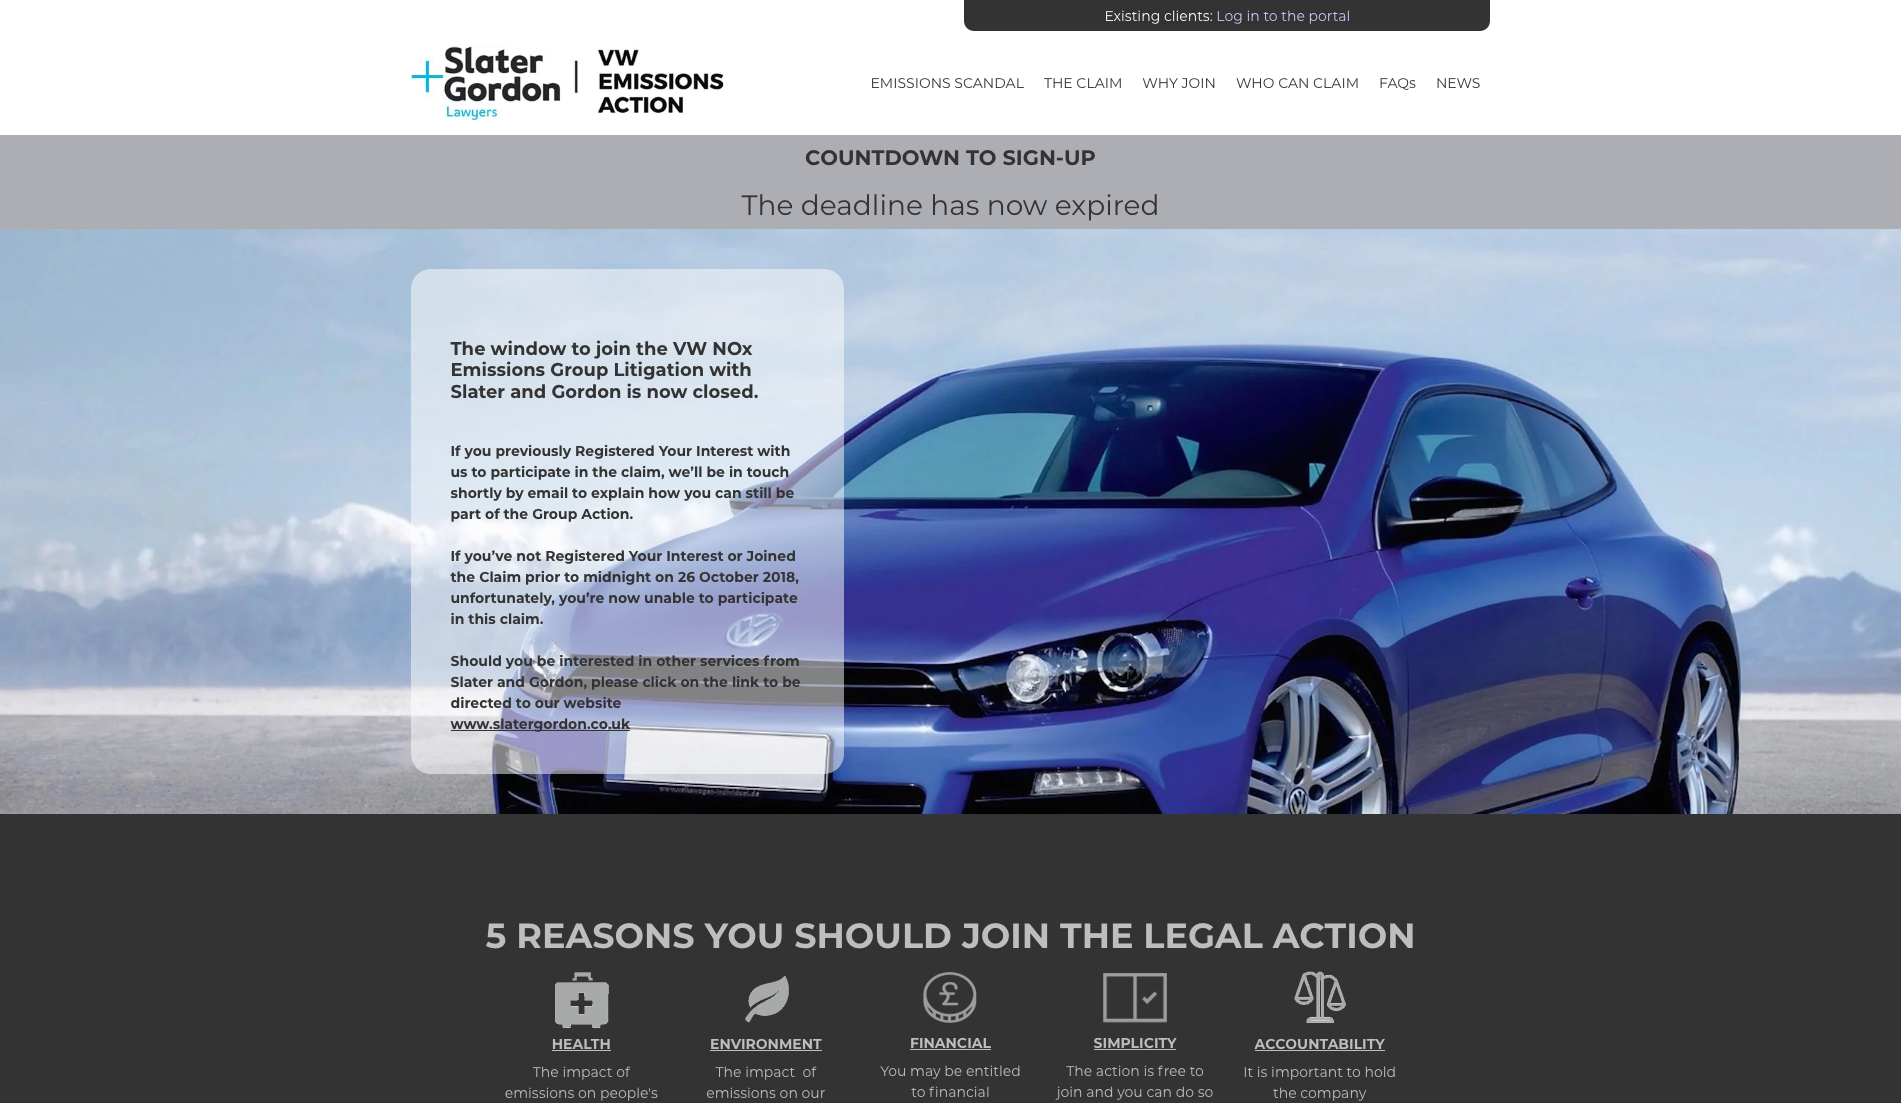 Screenshot_2019-05-30 VW Emissions Action - leading the UK's legal action against the emissions scandal